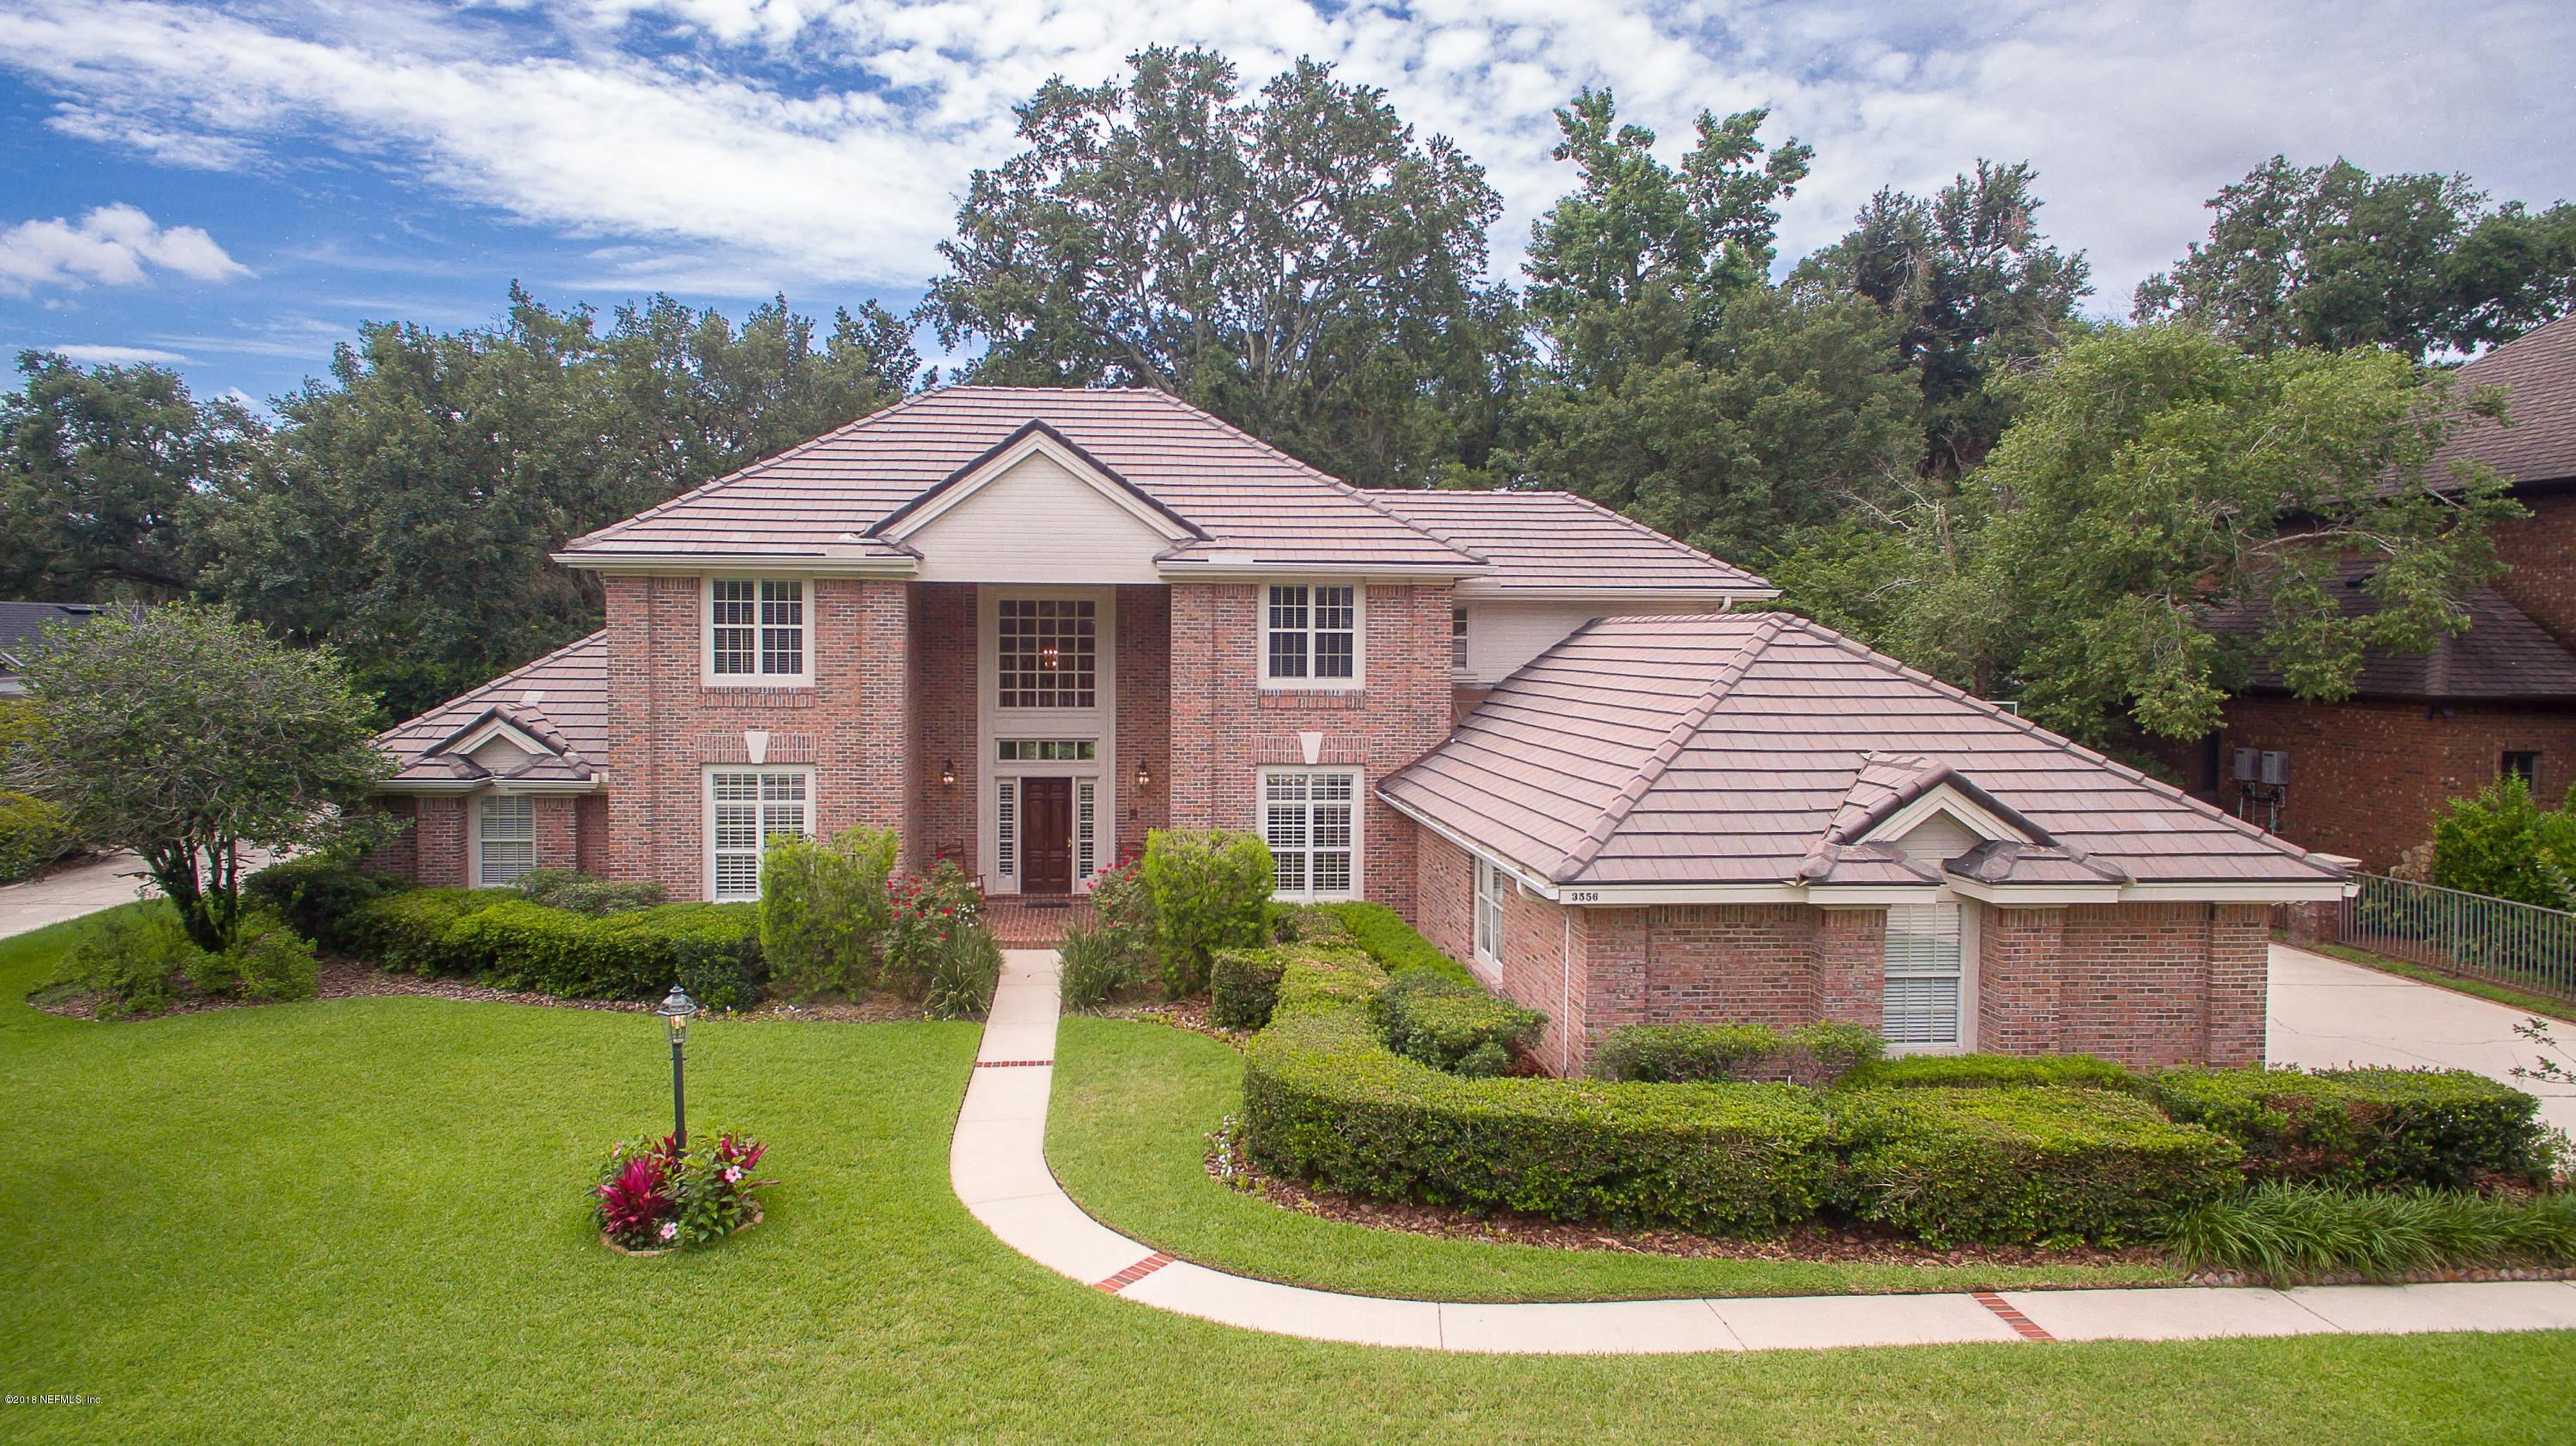 3556 SILVERY, JACKSONVILLE, FLORIDA 32217, 4 Bedrooms Bedrooms, ,5 BathroomsBathrooms,Residential - single family,For sale,SILVERY,942207